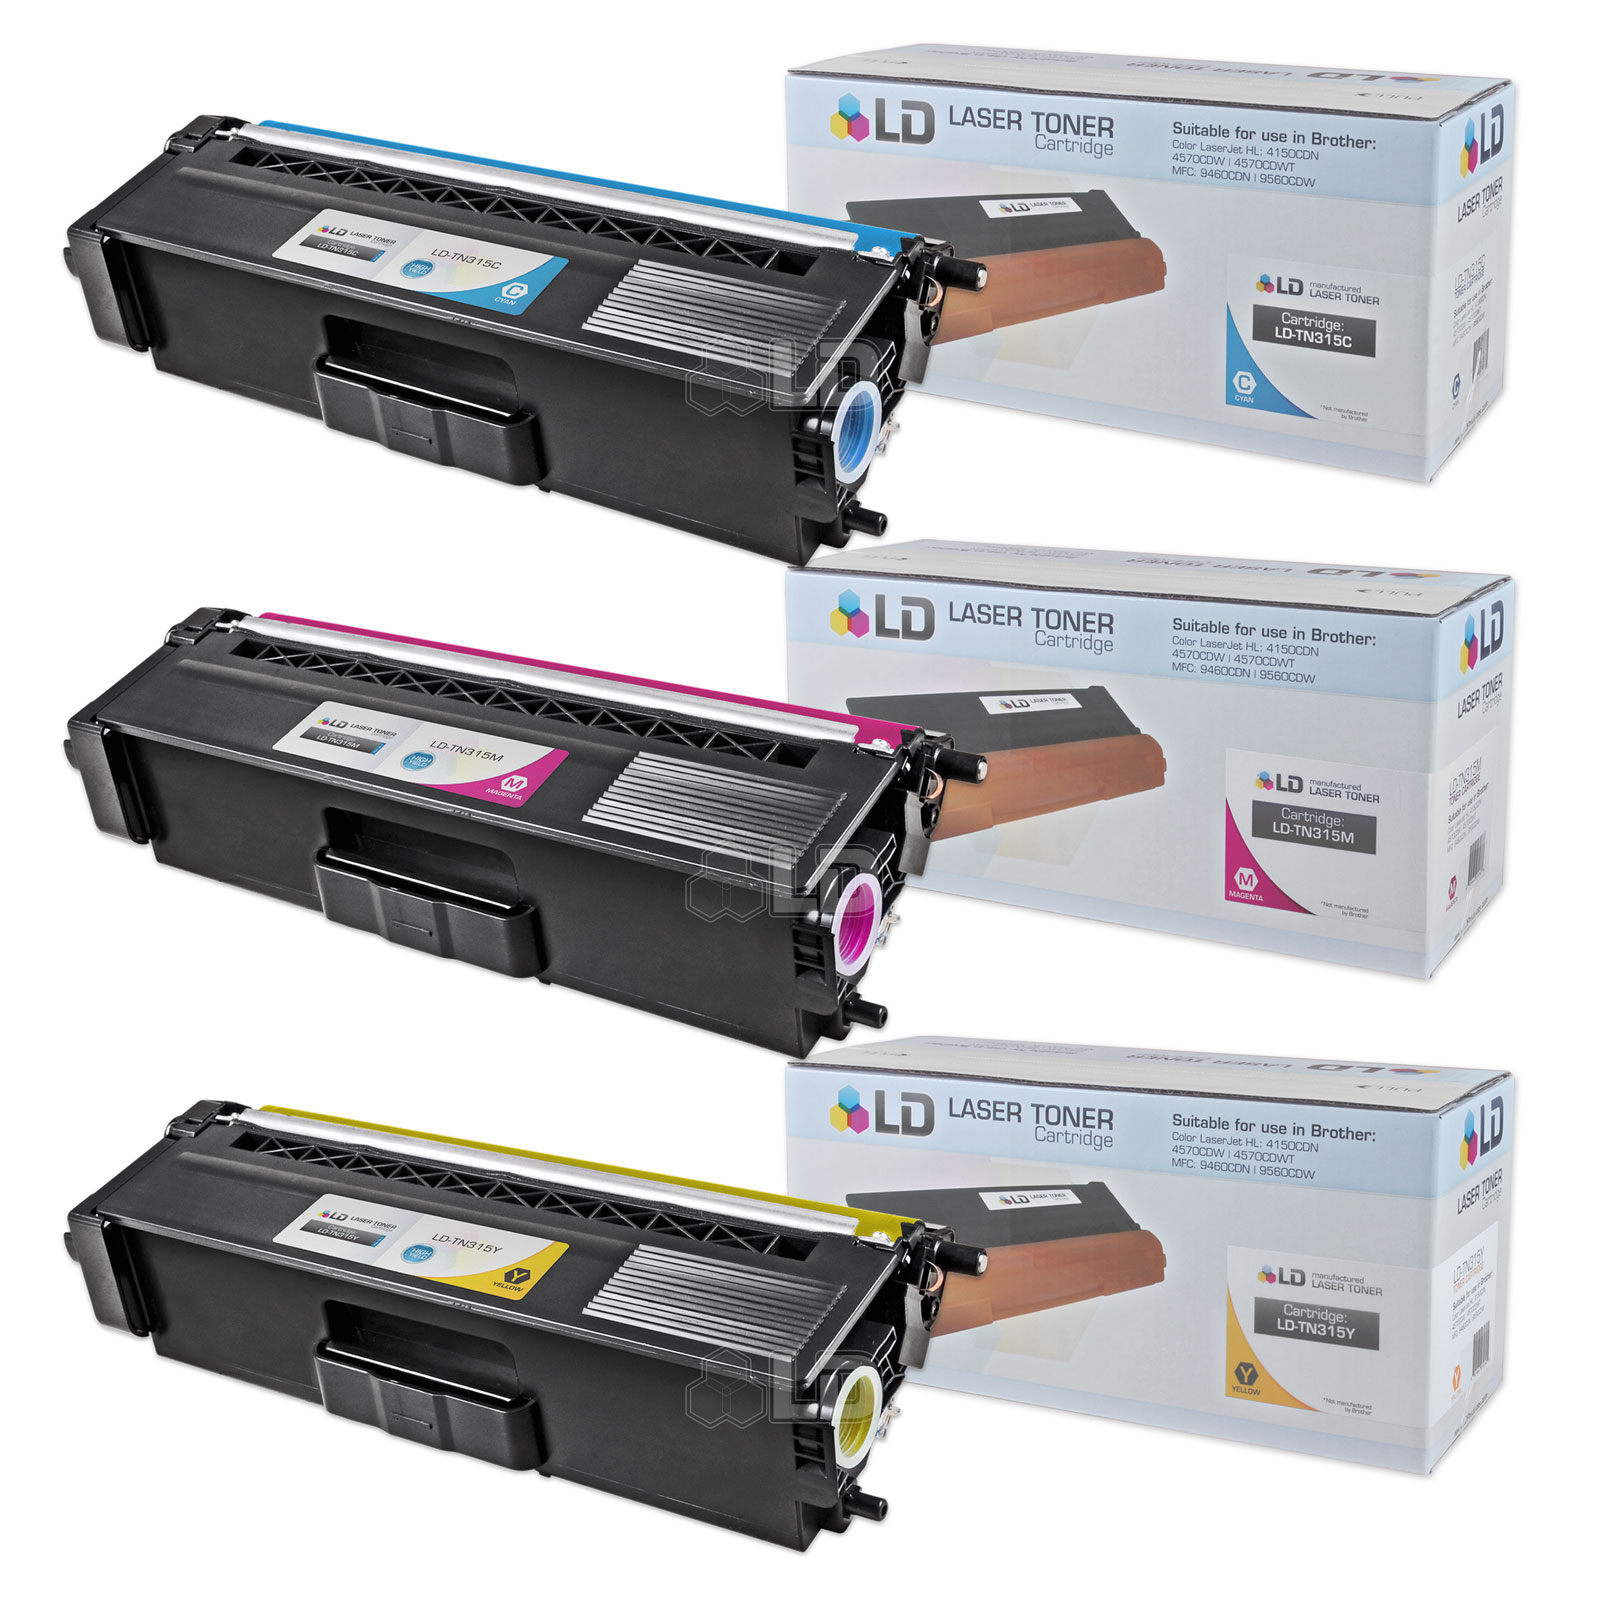 LD Compatible Brother TN315 (TN310) Set of 3 High Yield Color Cartridges: 1 Cyan, 1 Magenta & 1 Yellow for HL-4150cdn,